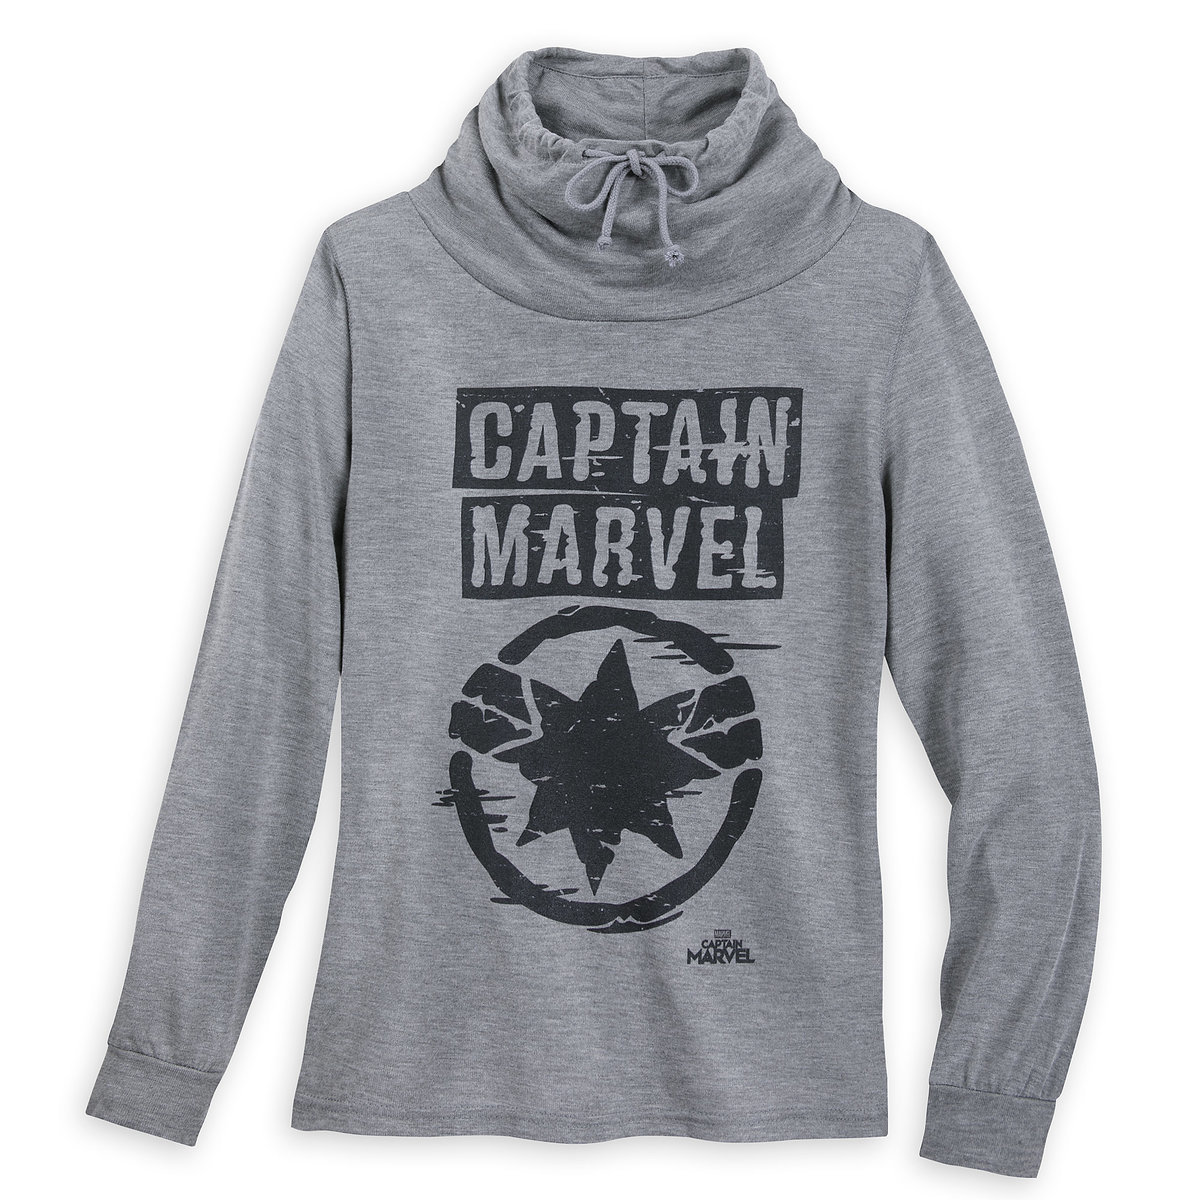 769f4fb5 Product Image of Marvel's Captain Marvel Cowl Neck Sweater for Juniors # 1